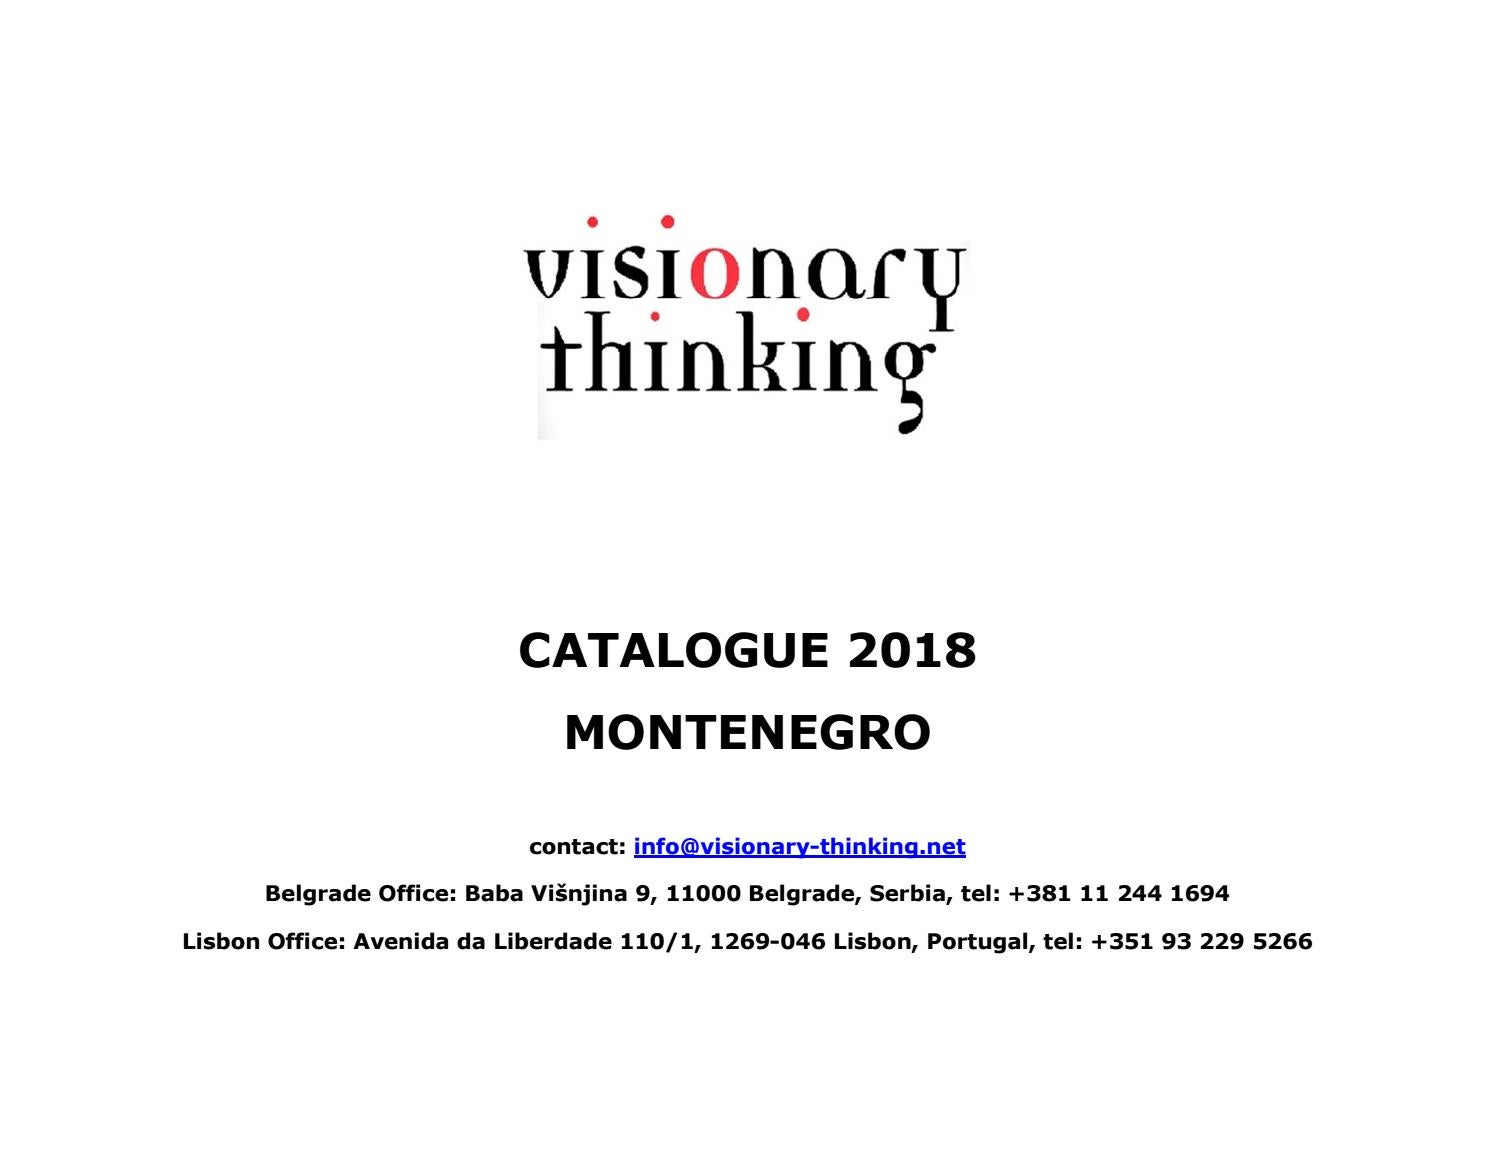 Visionary Thinking Catalogue, Montenegro 2018 by Dragan Petrovic - issuu